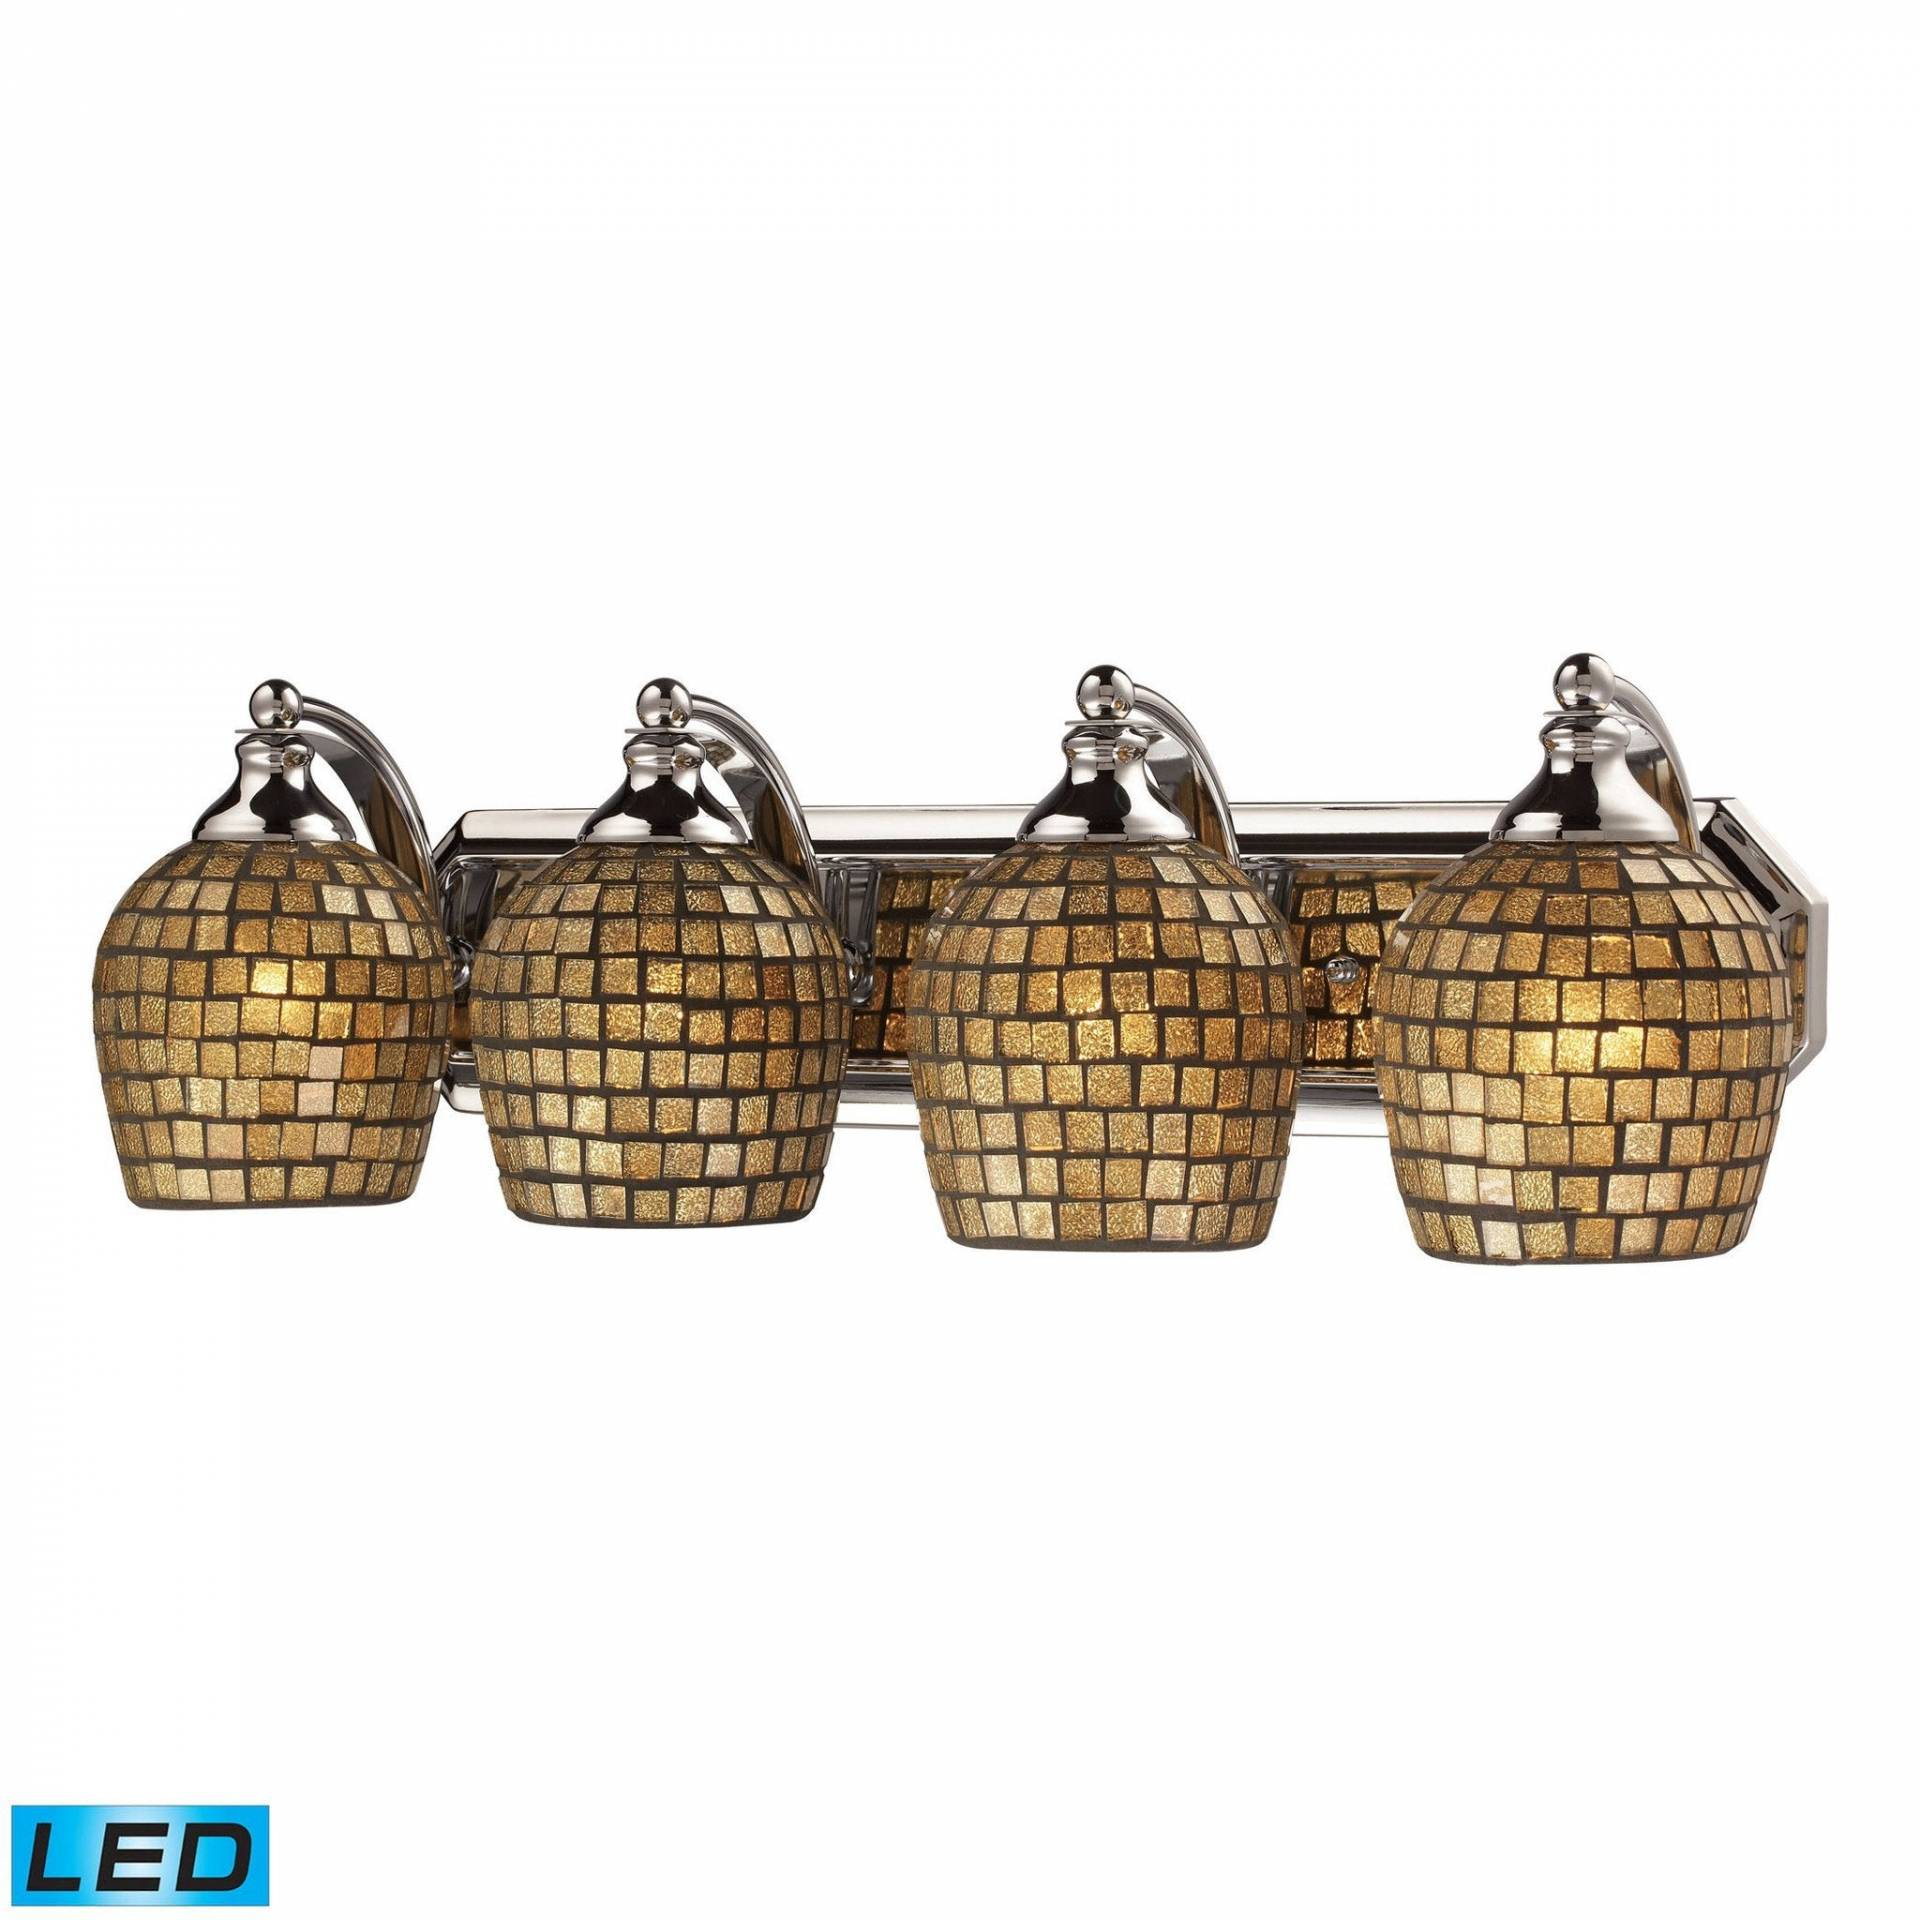 ELK Lighting 570-4C-GLD-LED Bath And Spa Collection Polished Chrome Finish from ELK Lighting